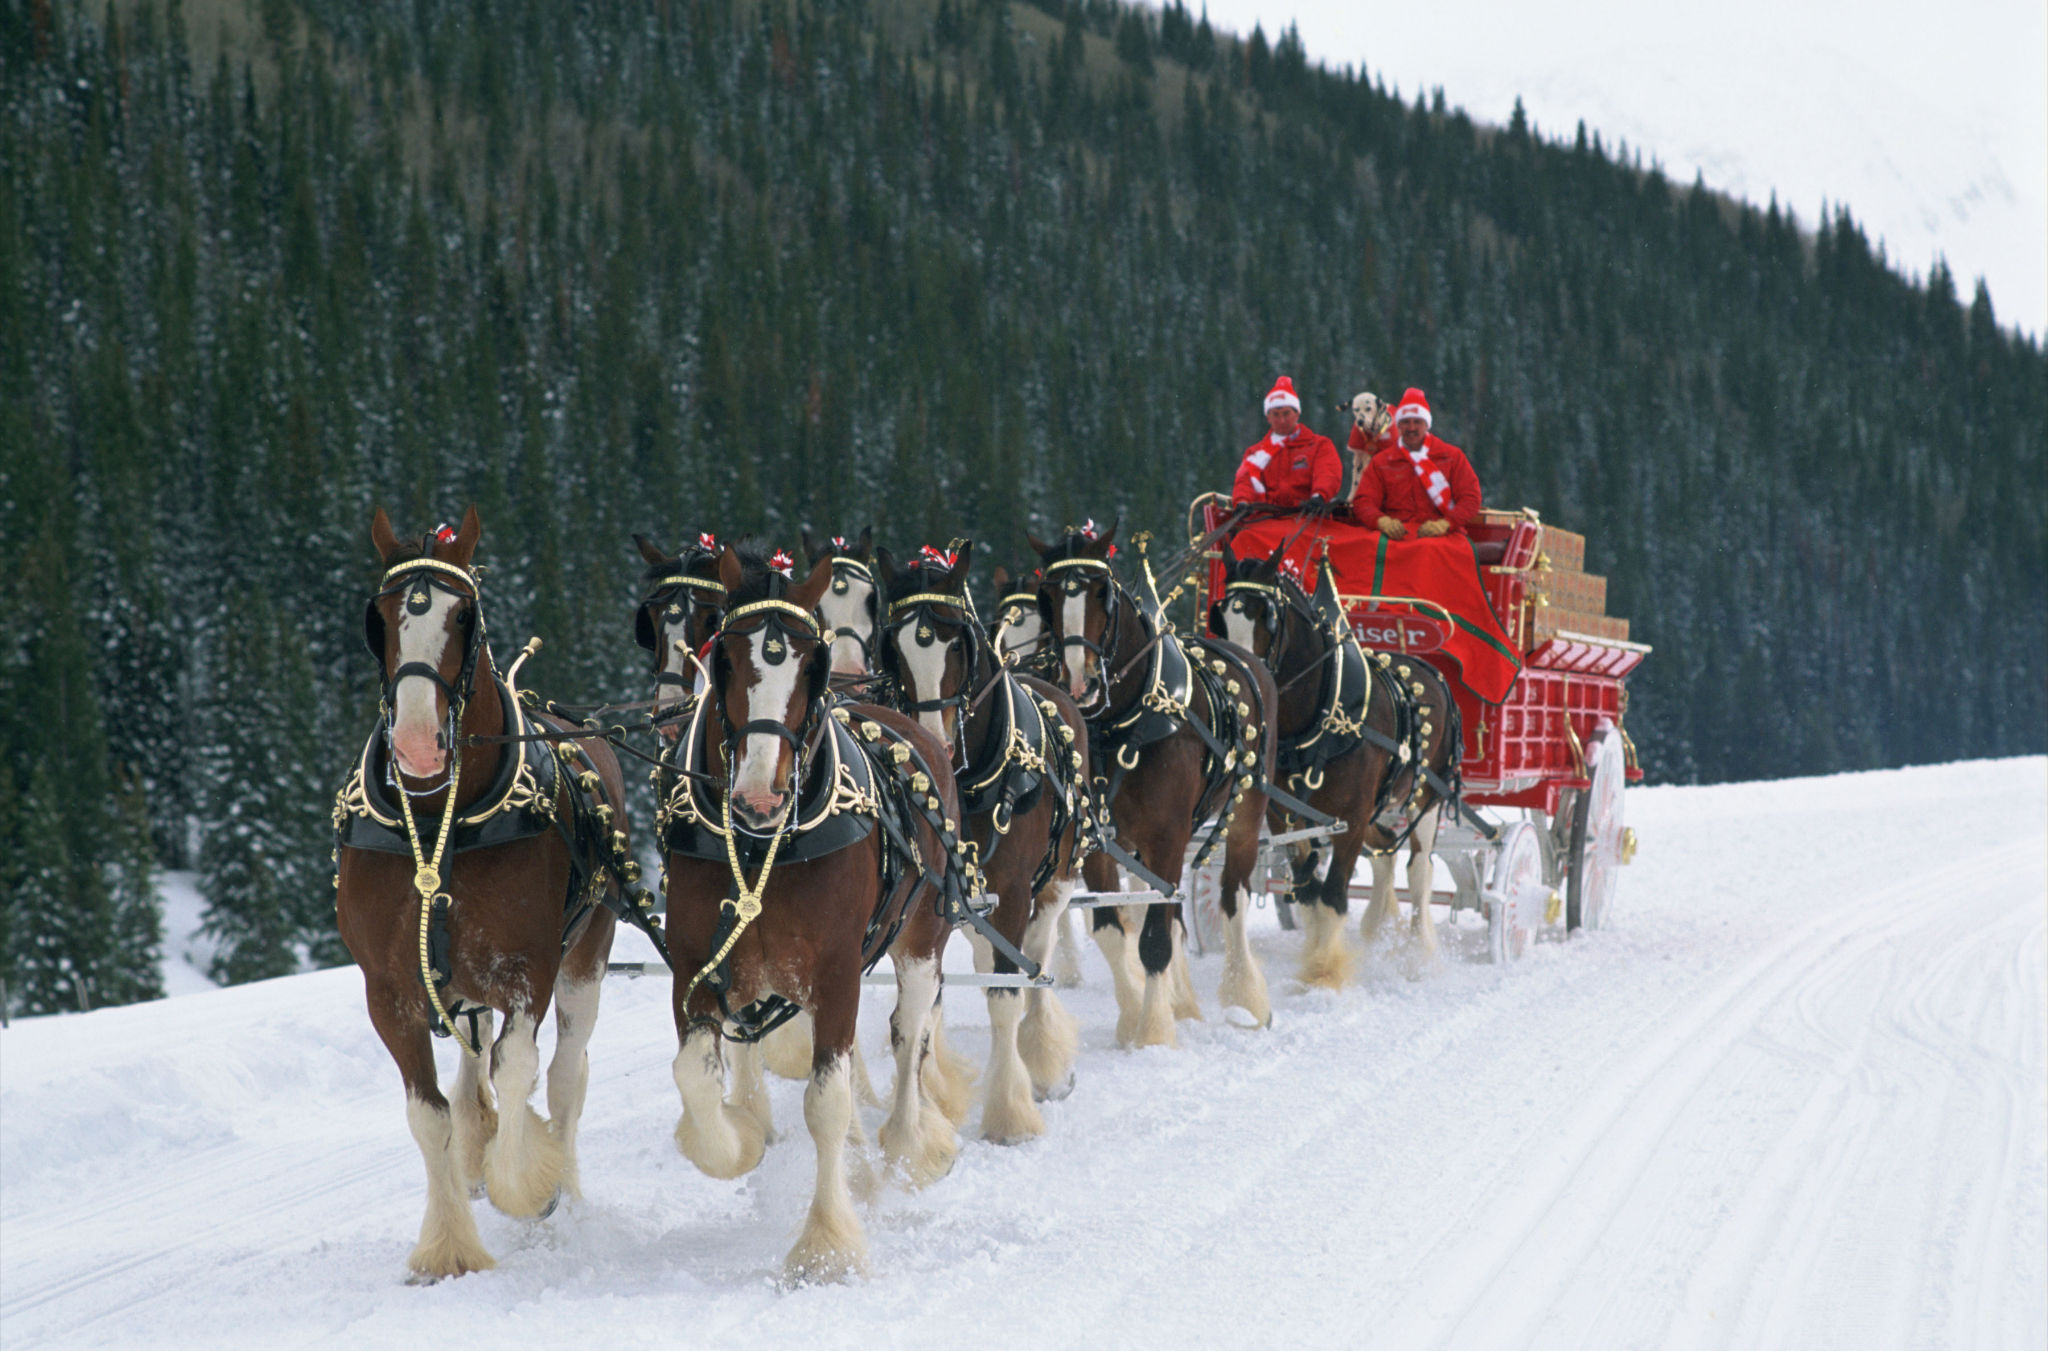 Why does Budweiser Use Clydesdales in Their Ads? A Quick History